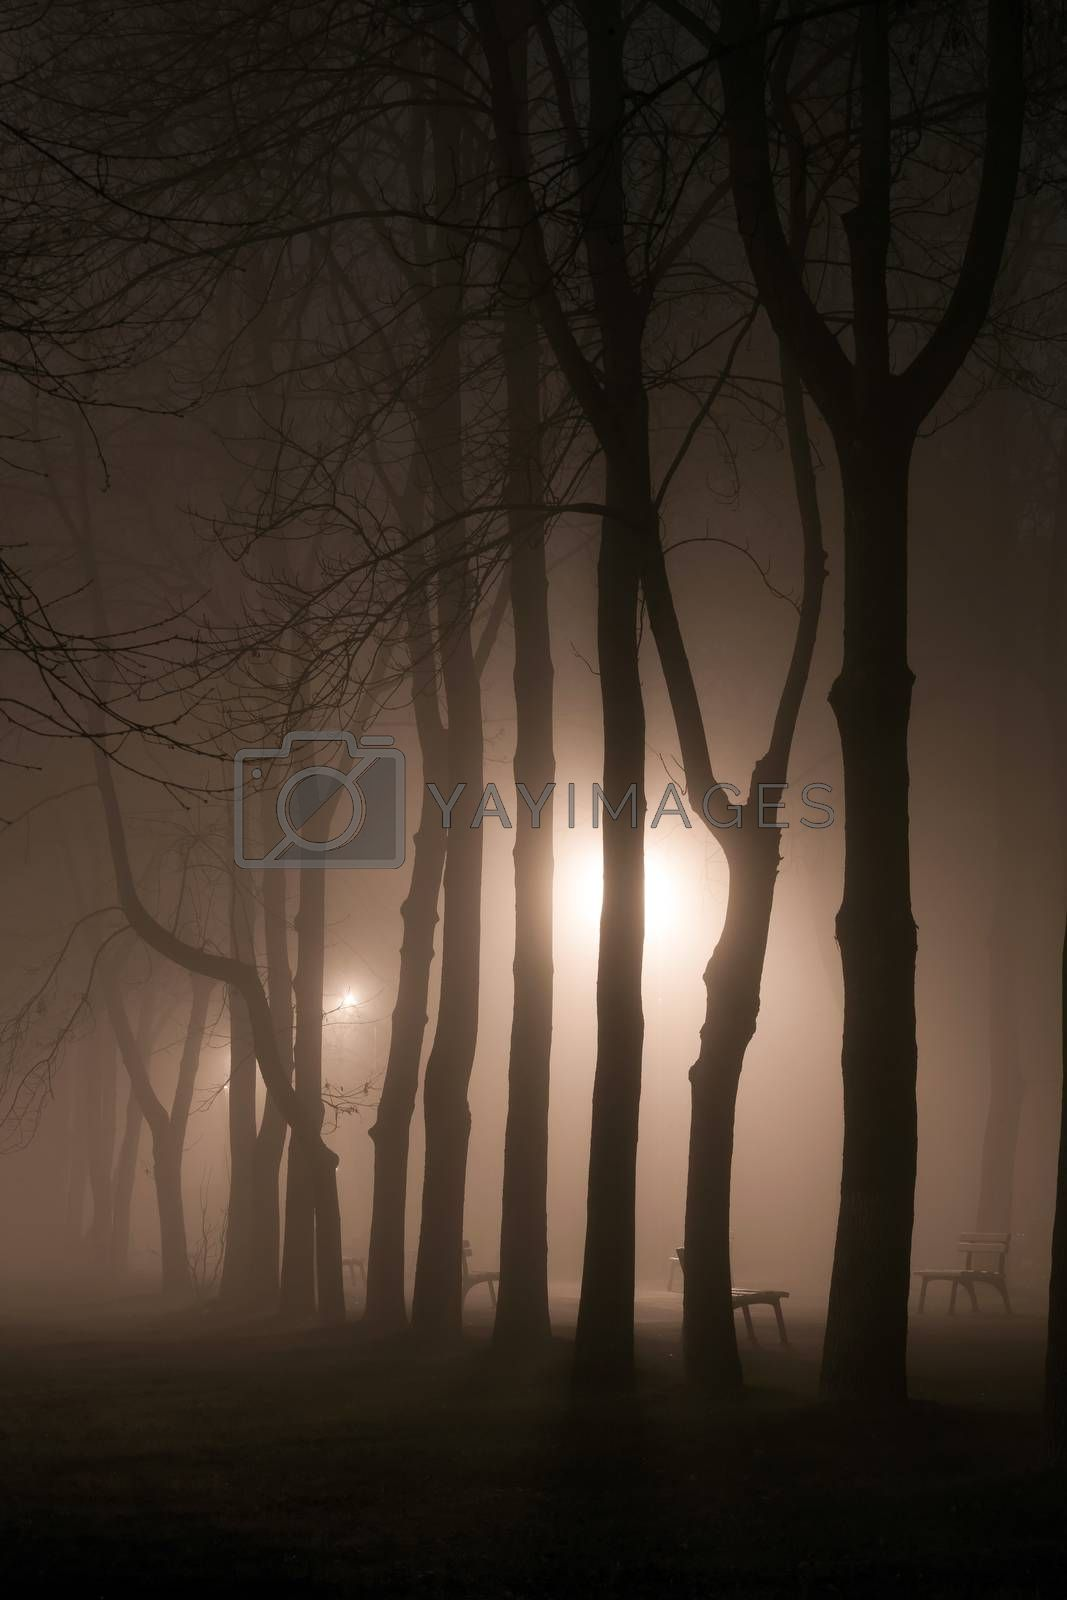 Foggy park alley with benches and trees silhoettes on night by PixAchi